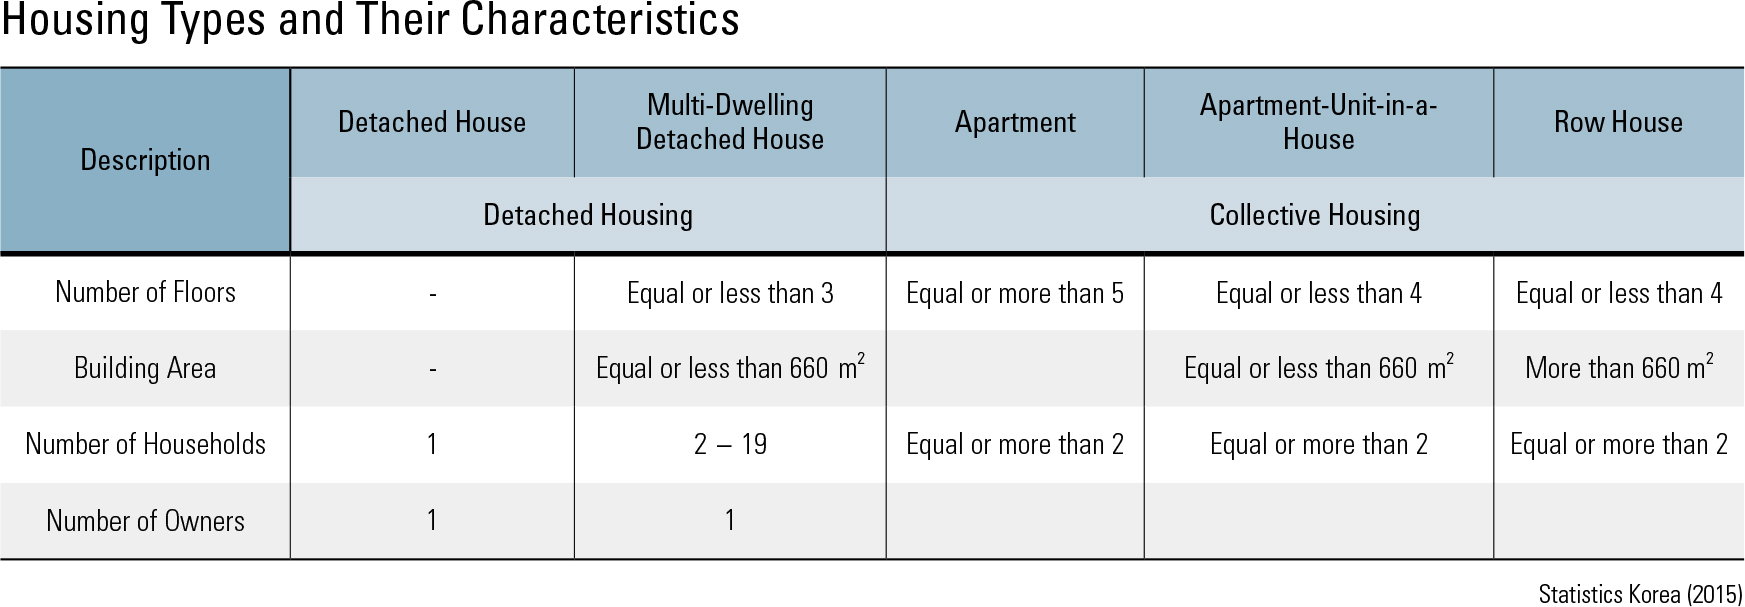 Housing Types and Their Characteristics